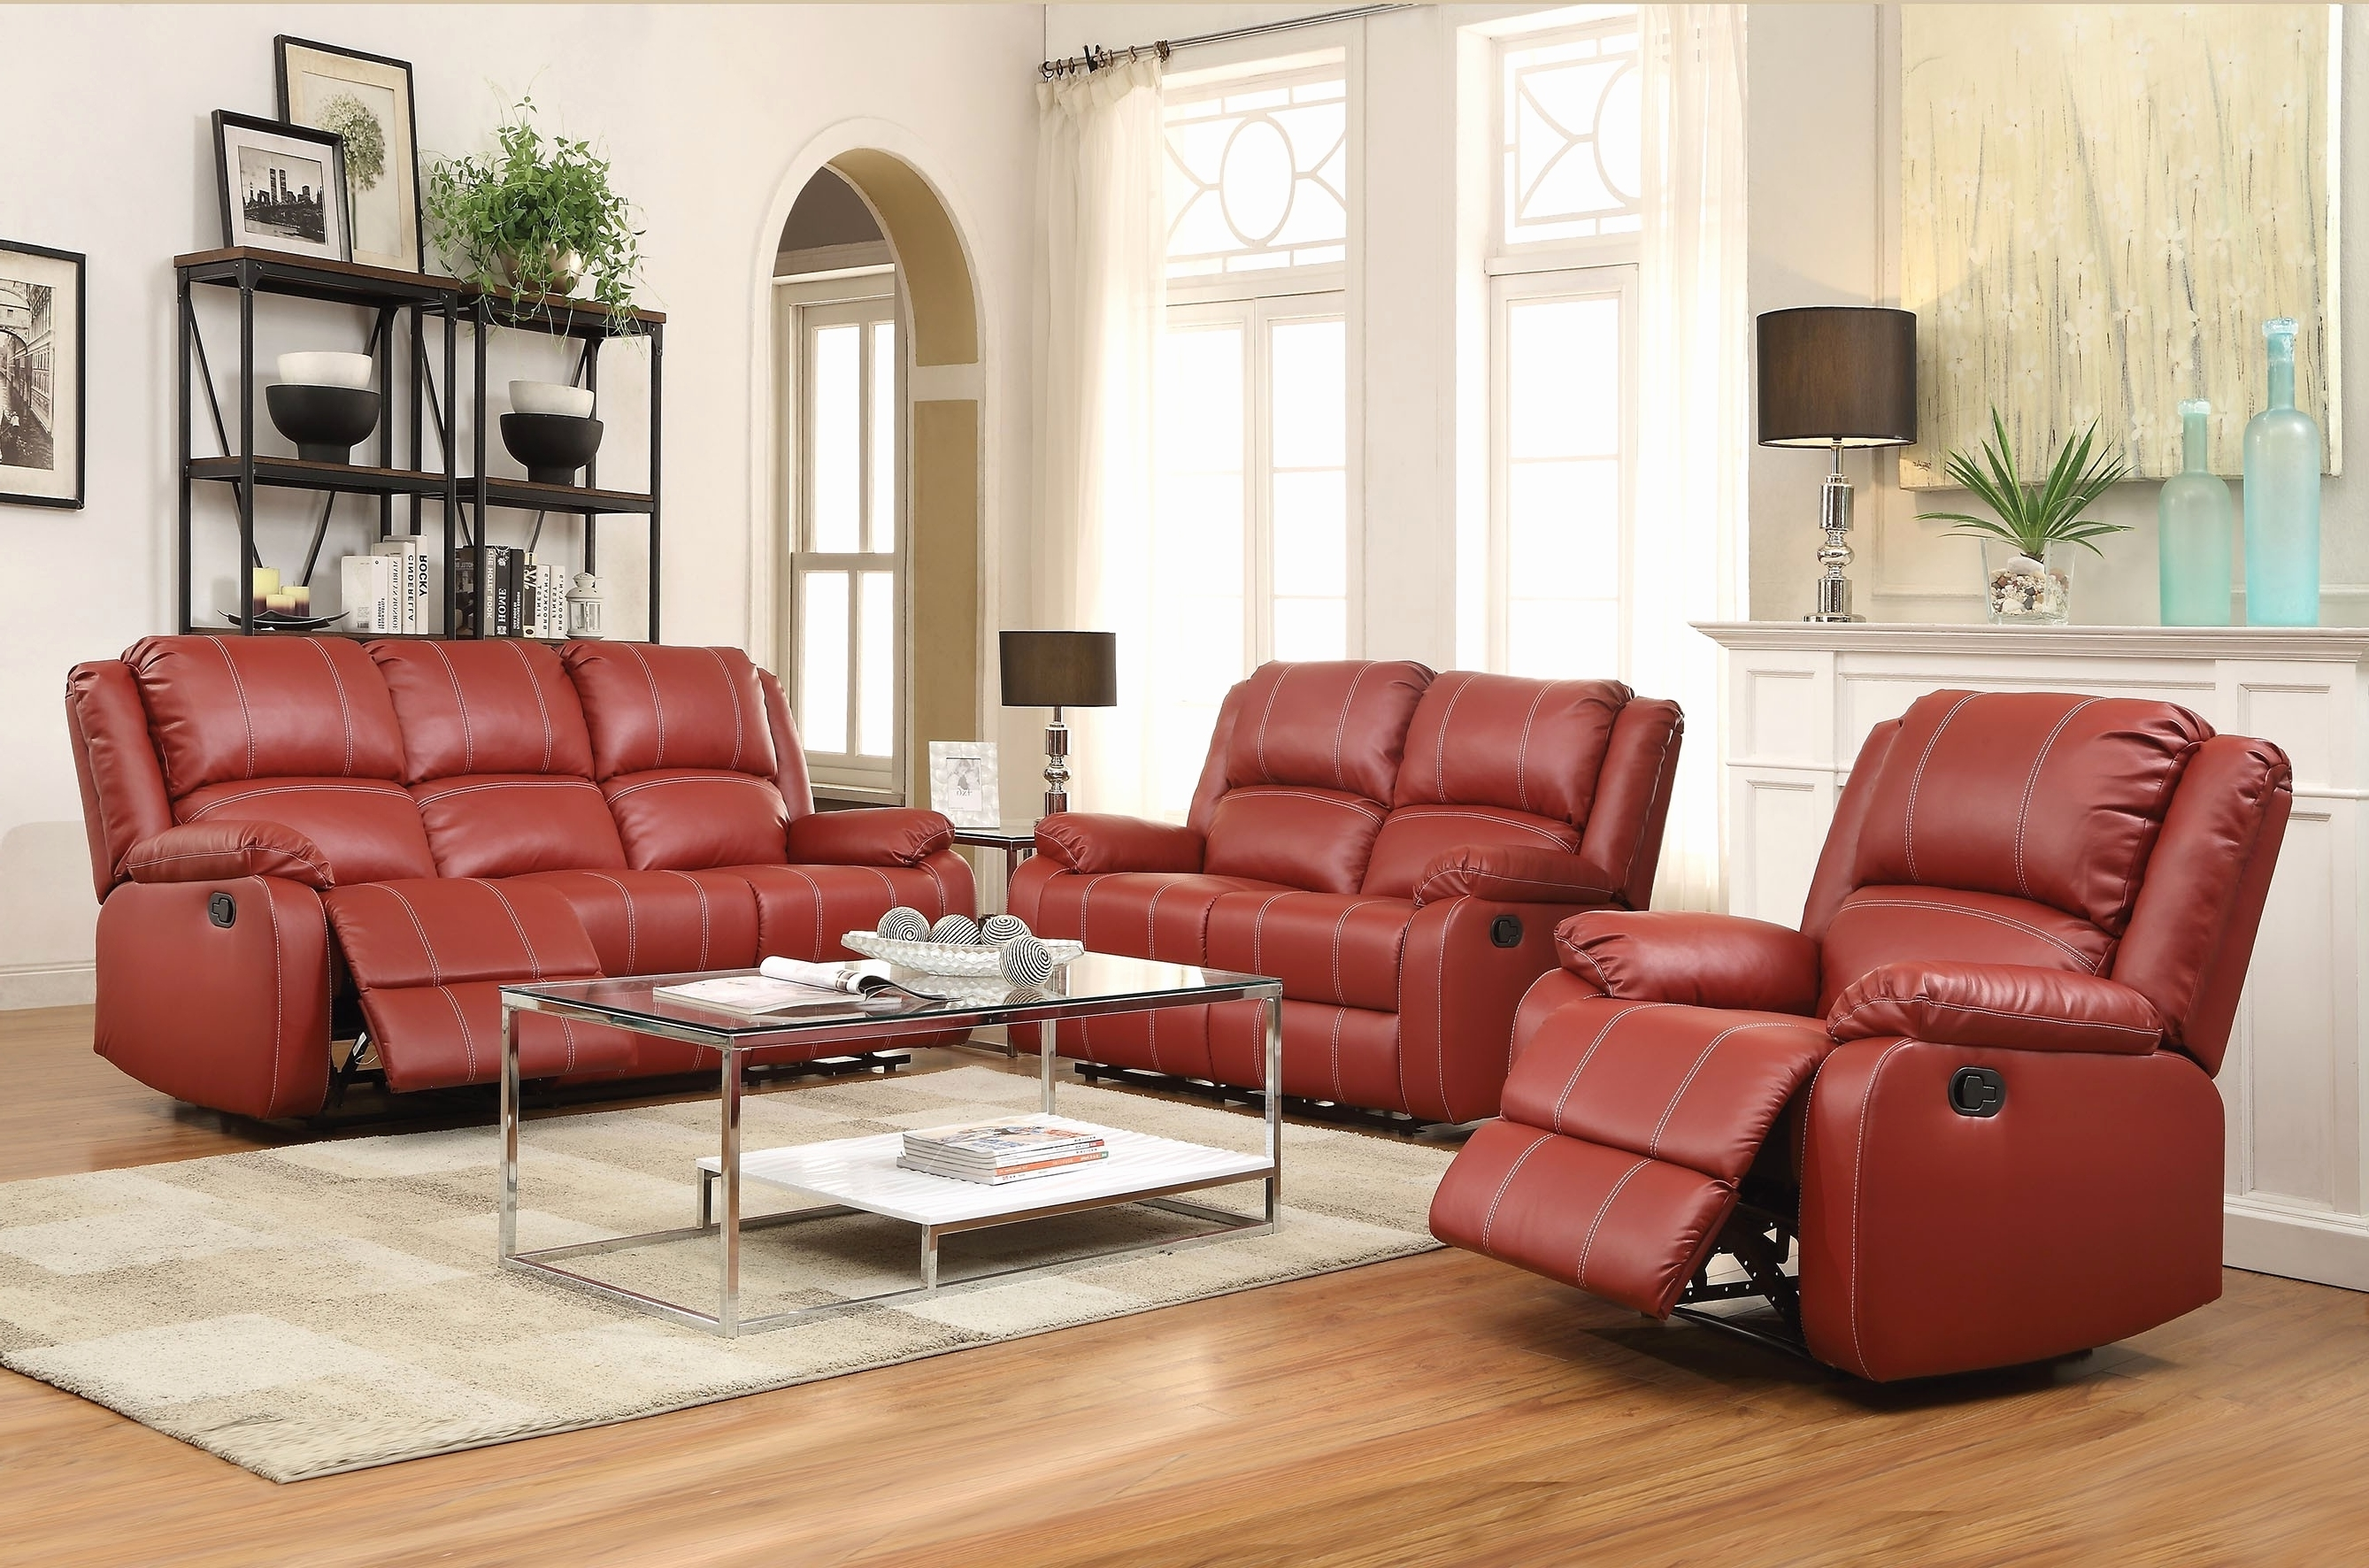 Well Liked Red Leather Reclining Sofa And Loveseat (View 17 of 20)